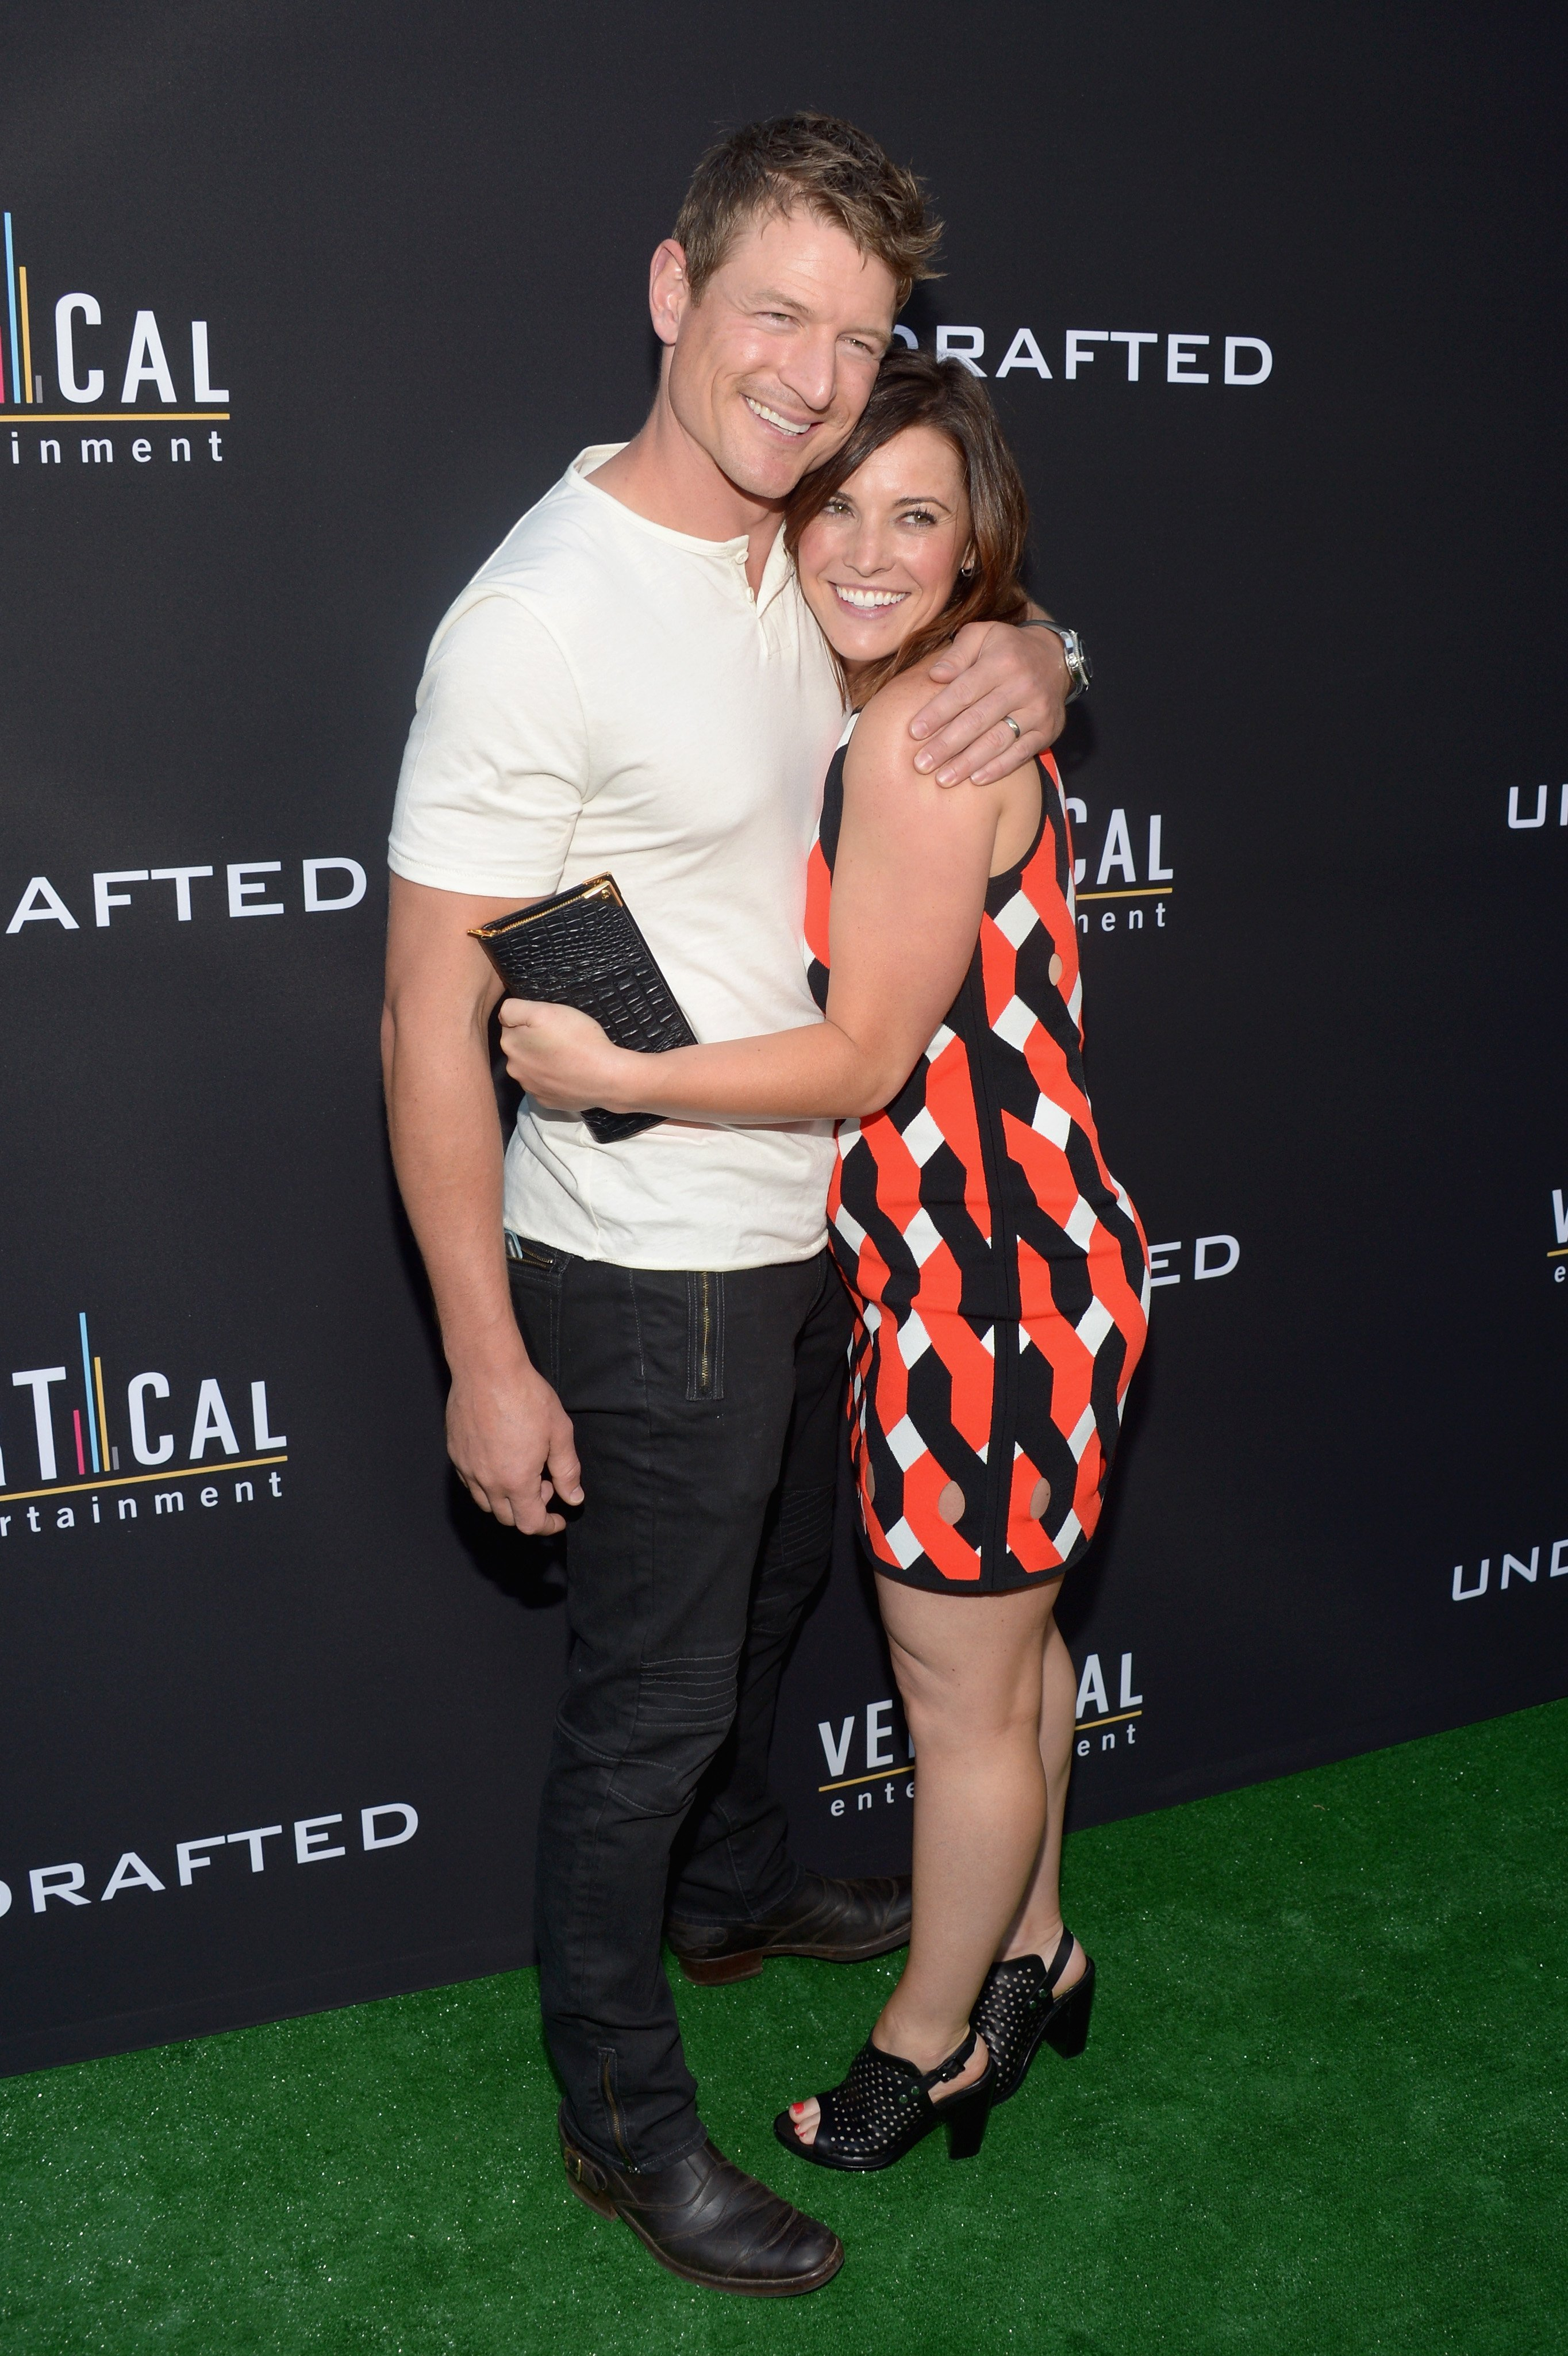 """Philip Winchester (L) and Megan Coughlin attend the premiere of Vertical Entertainment's """"Undrafted"""" at ArcLight Hollywood on July 11, 2016, in Hollywood, California. 